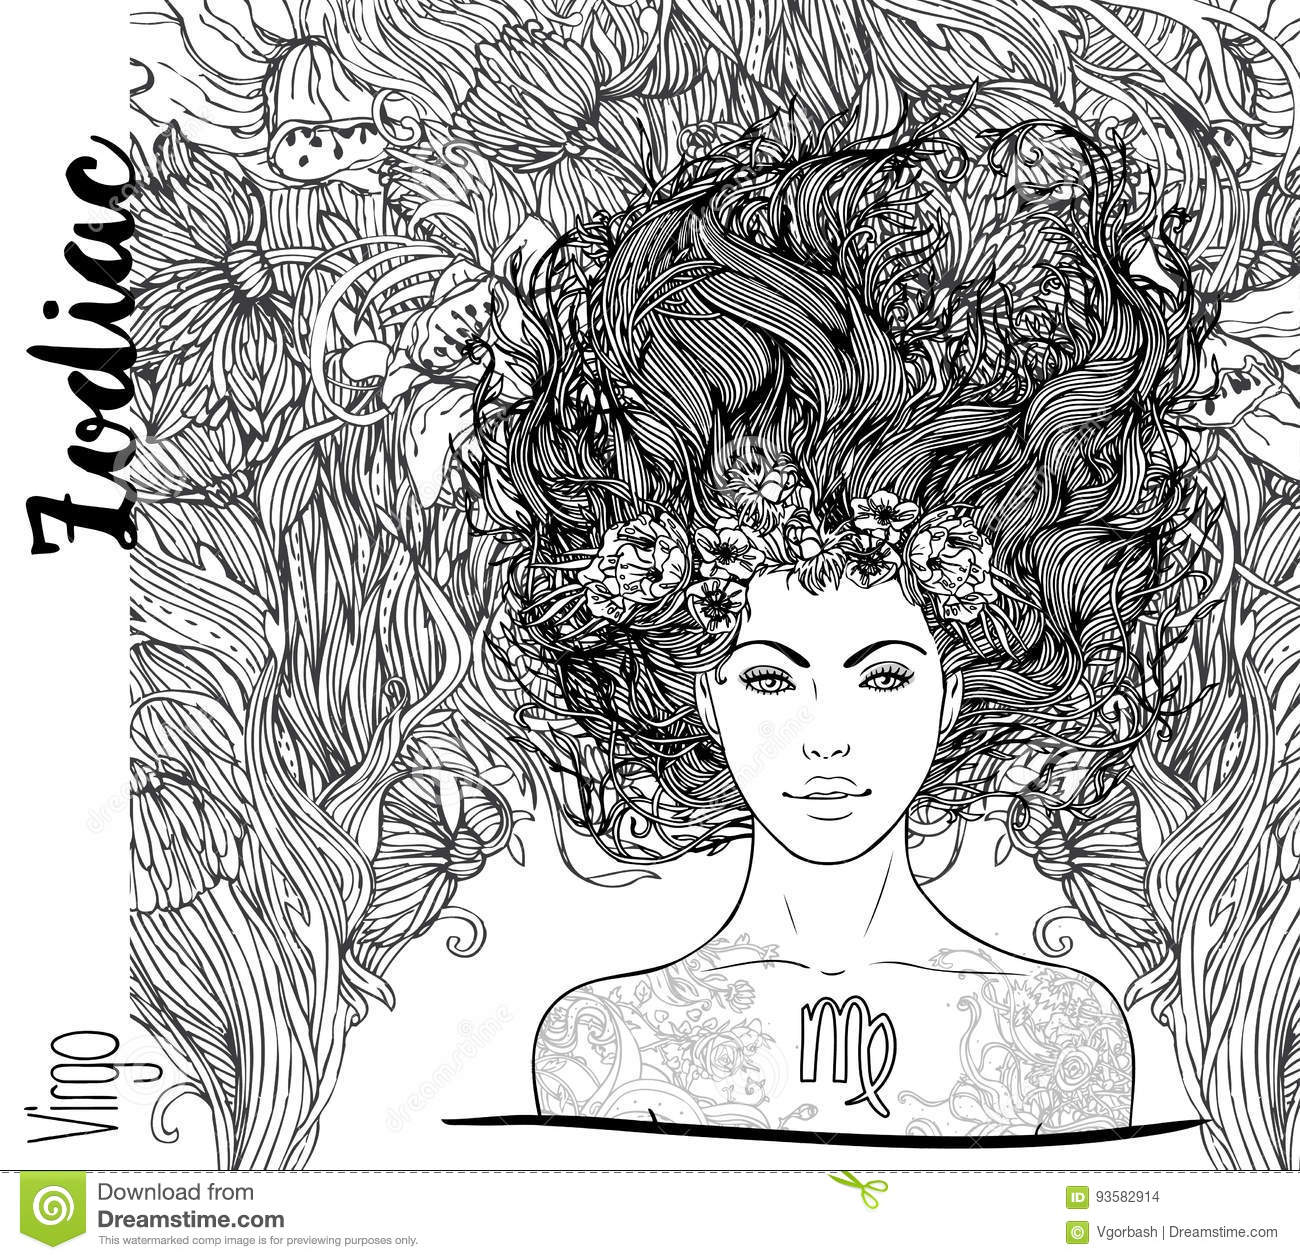 africain zodiac coloring pages - photo#37